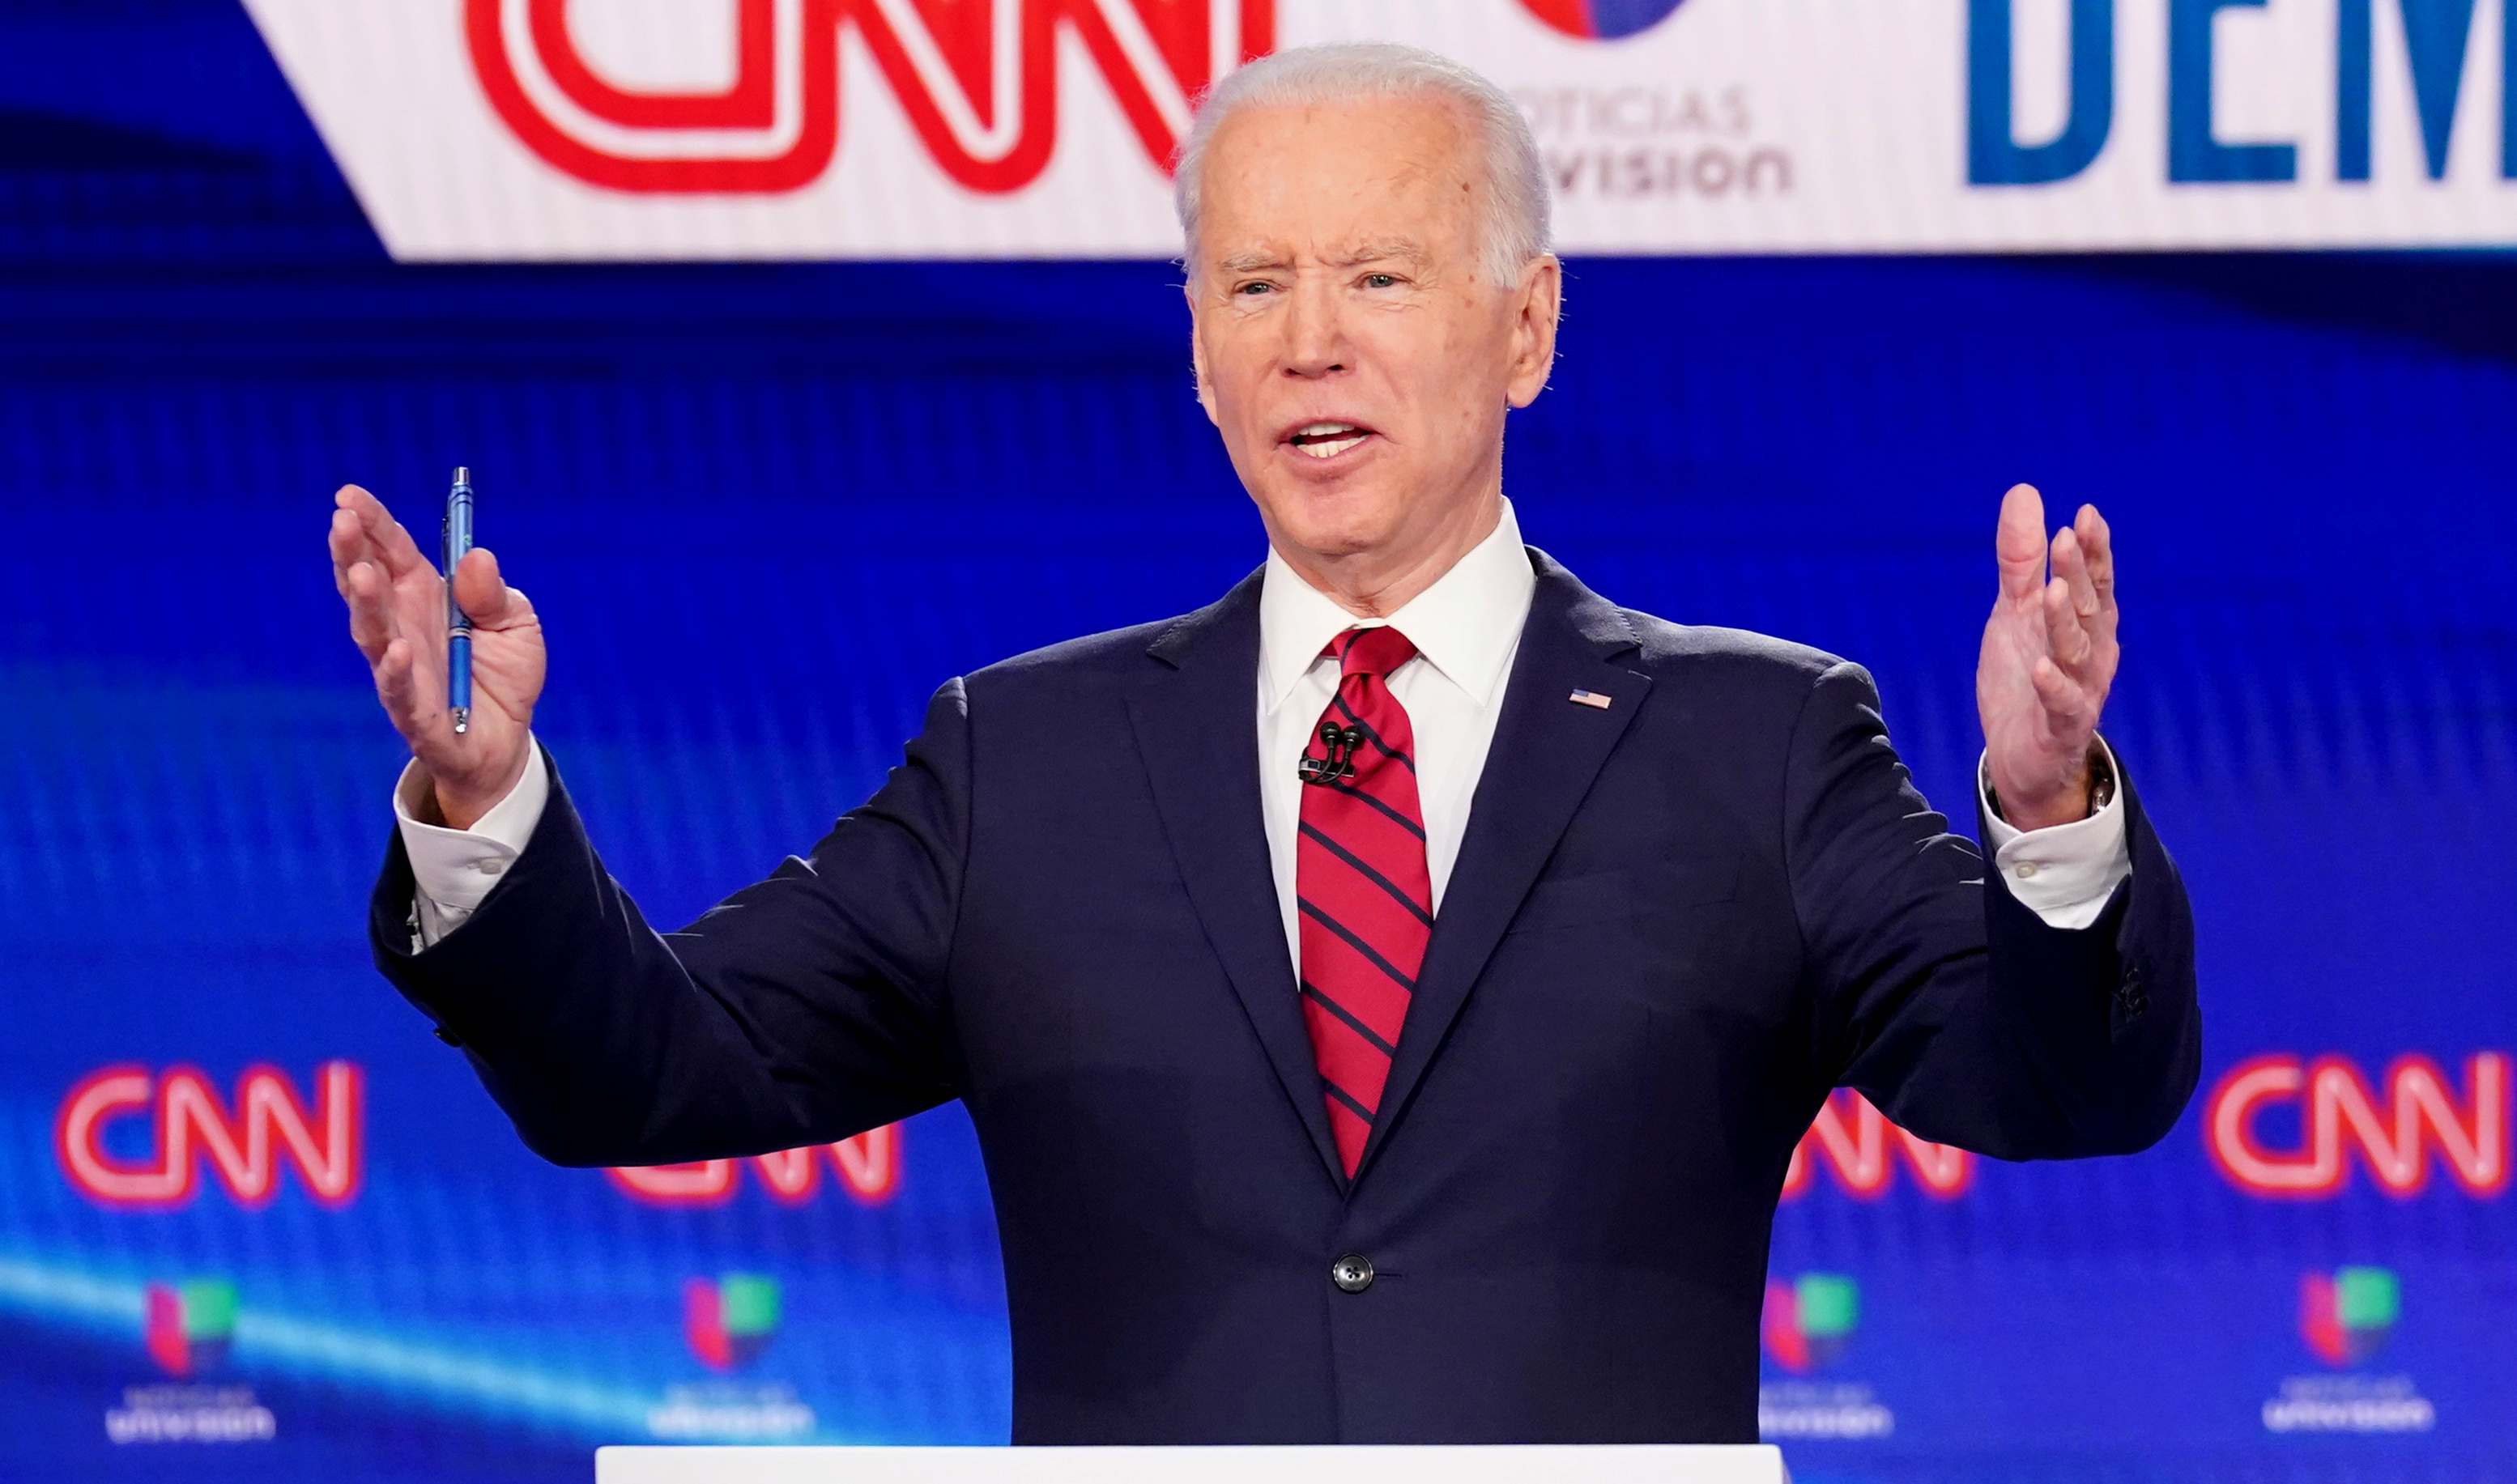 FILE PHOTO: Democratic U.S. presidential candidate and former Vice President Joe Biden speaks during the 11th Democratic candidates debate of the 2020 U.S. presidential campaign, held in CNN's Washington studios without an audience because of the global coronavirus pandemic, in Washington, U.S., March 15, 2020. REUTERS/Kevin Lamarque